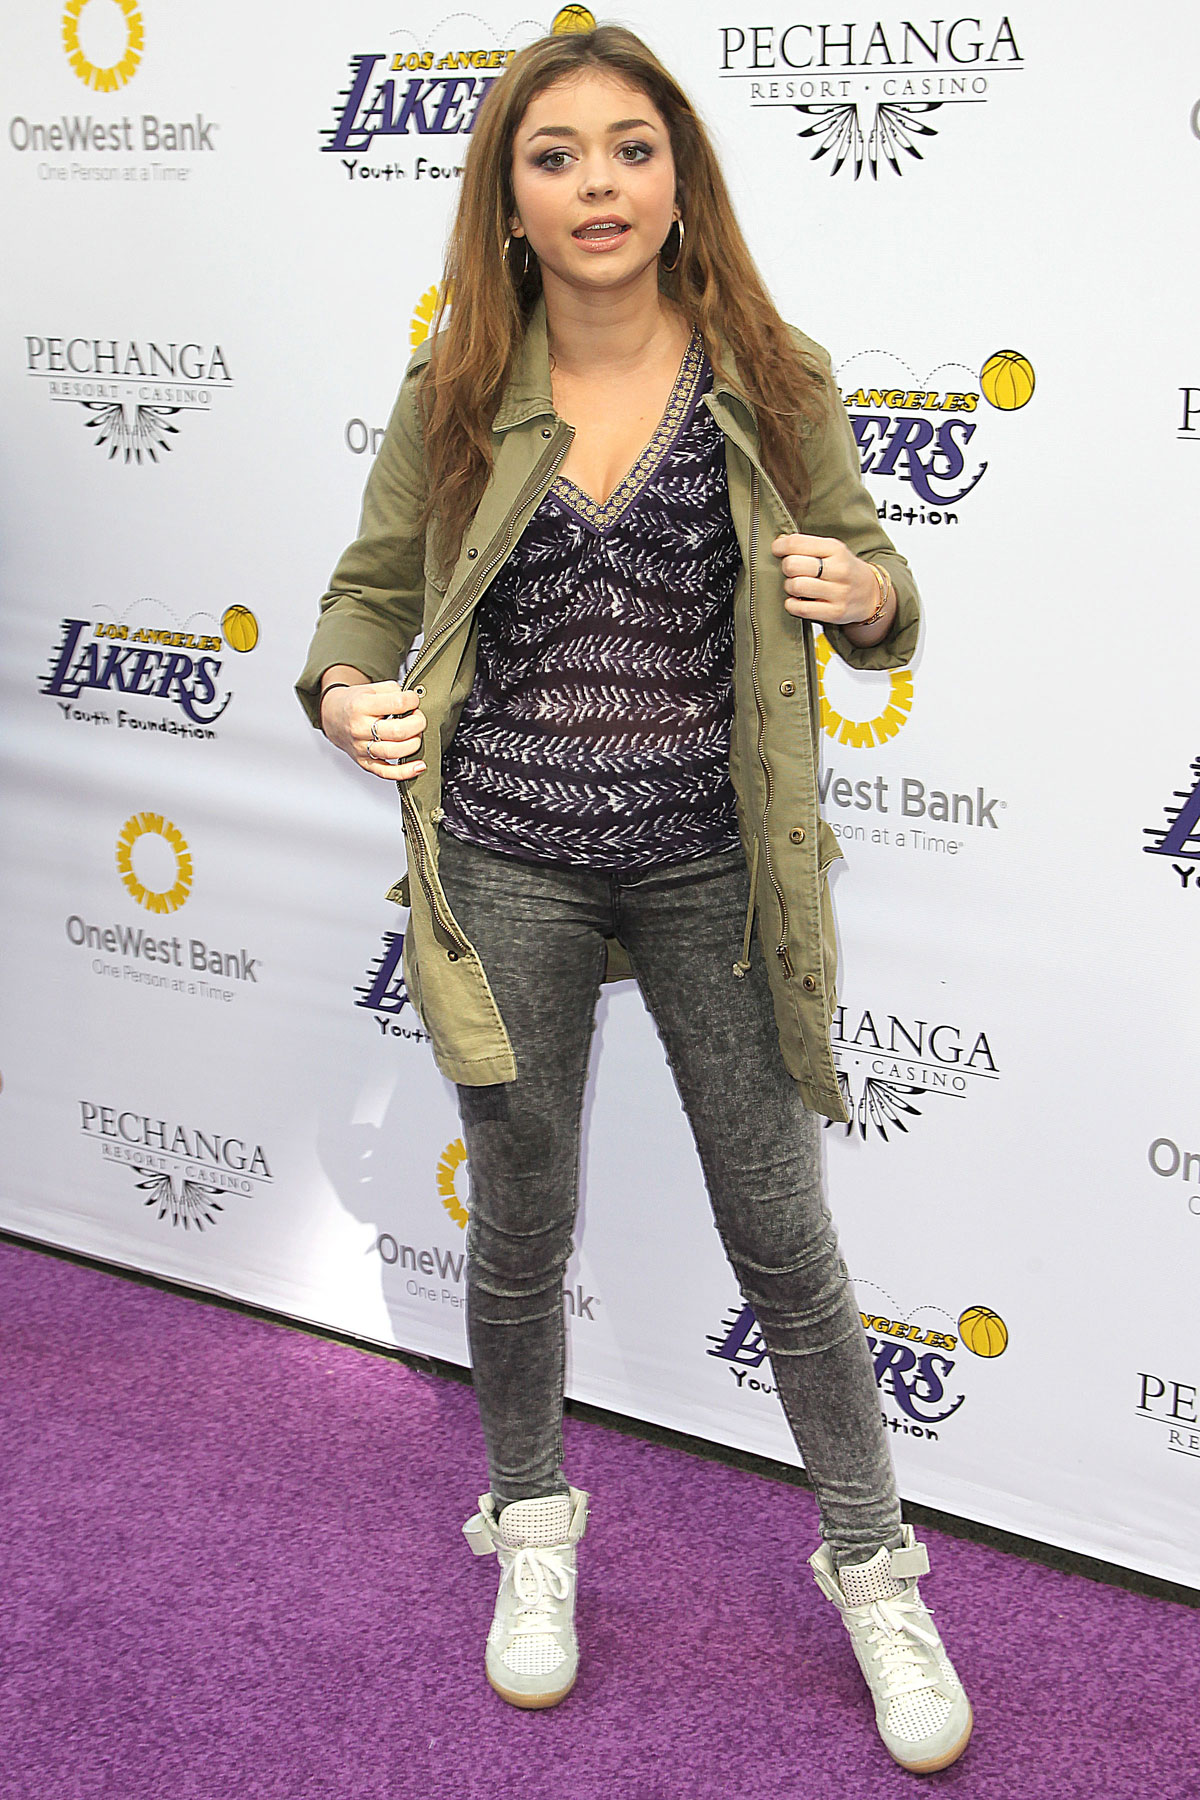 SARAH HYLAND at LA Lakers Casino Night in Los Angeles